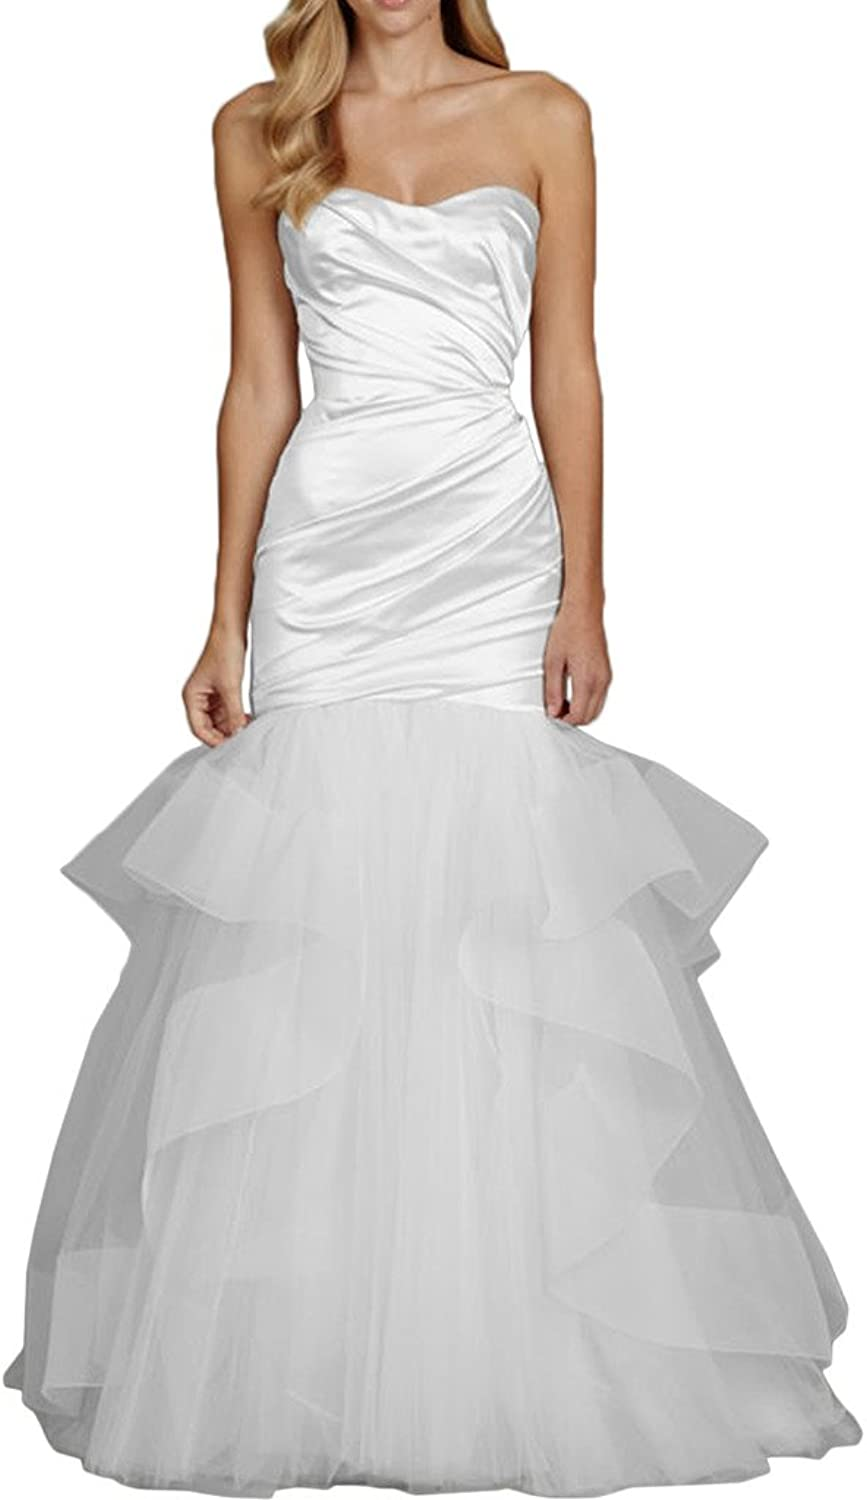 Avril Dress Sweetheart Mermaid Layered Satin Tulle Wedding Gown Long Train